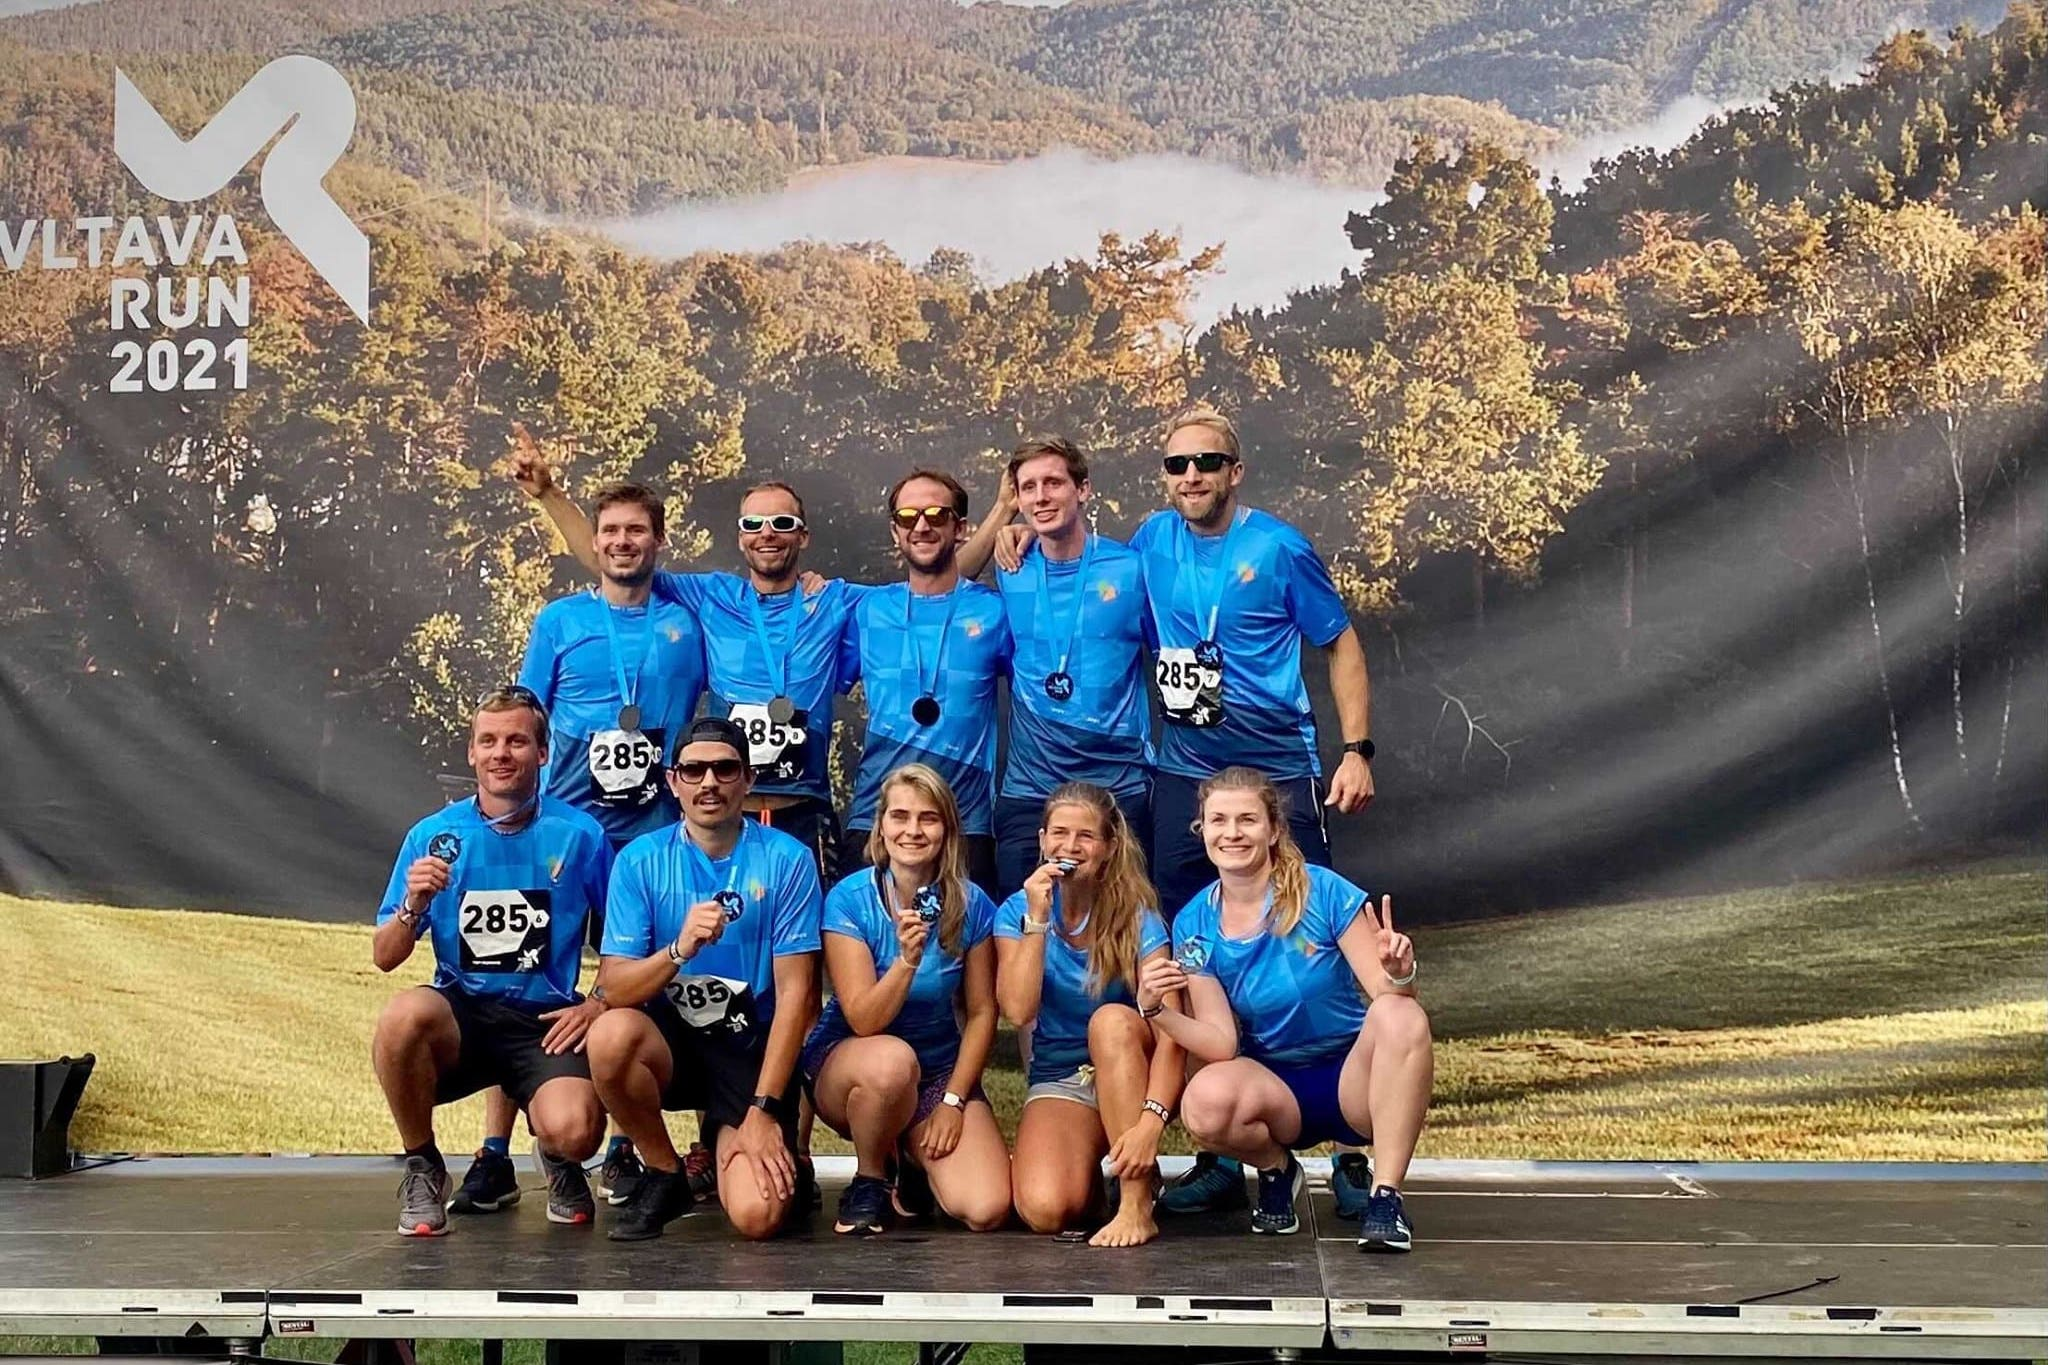 Apify team of runners